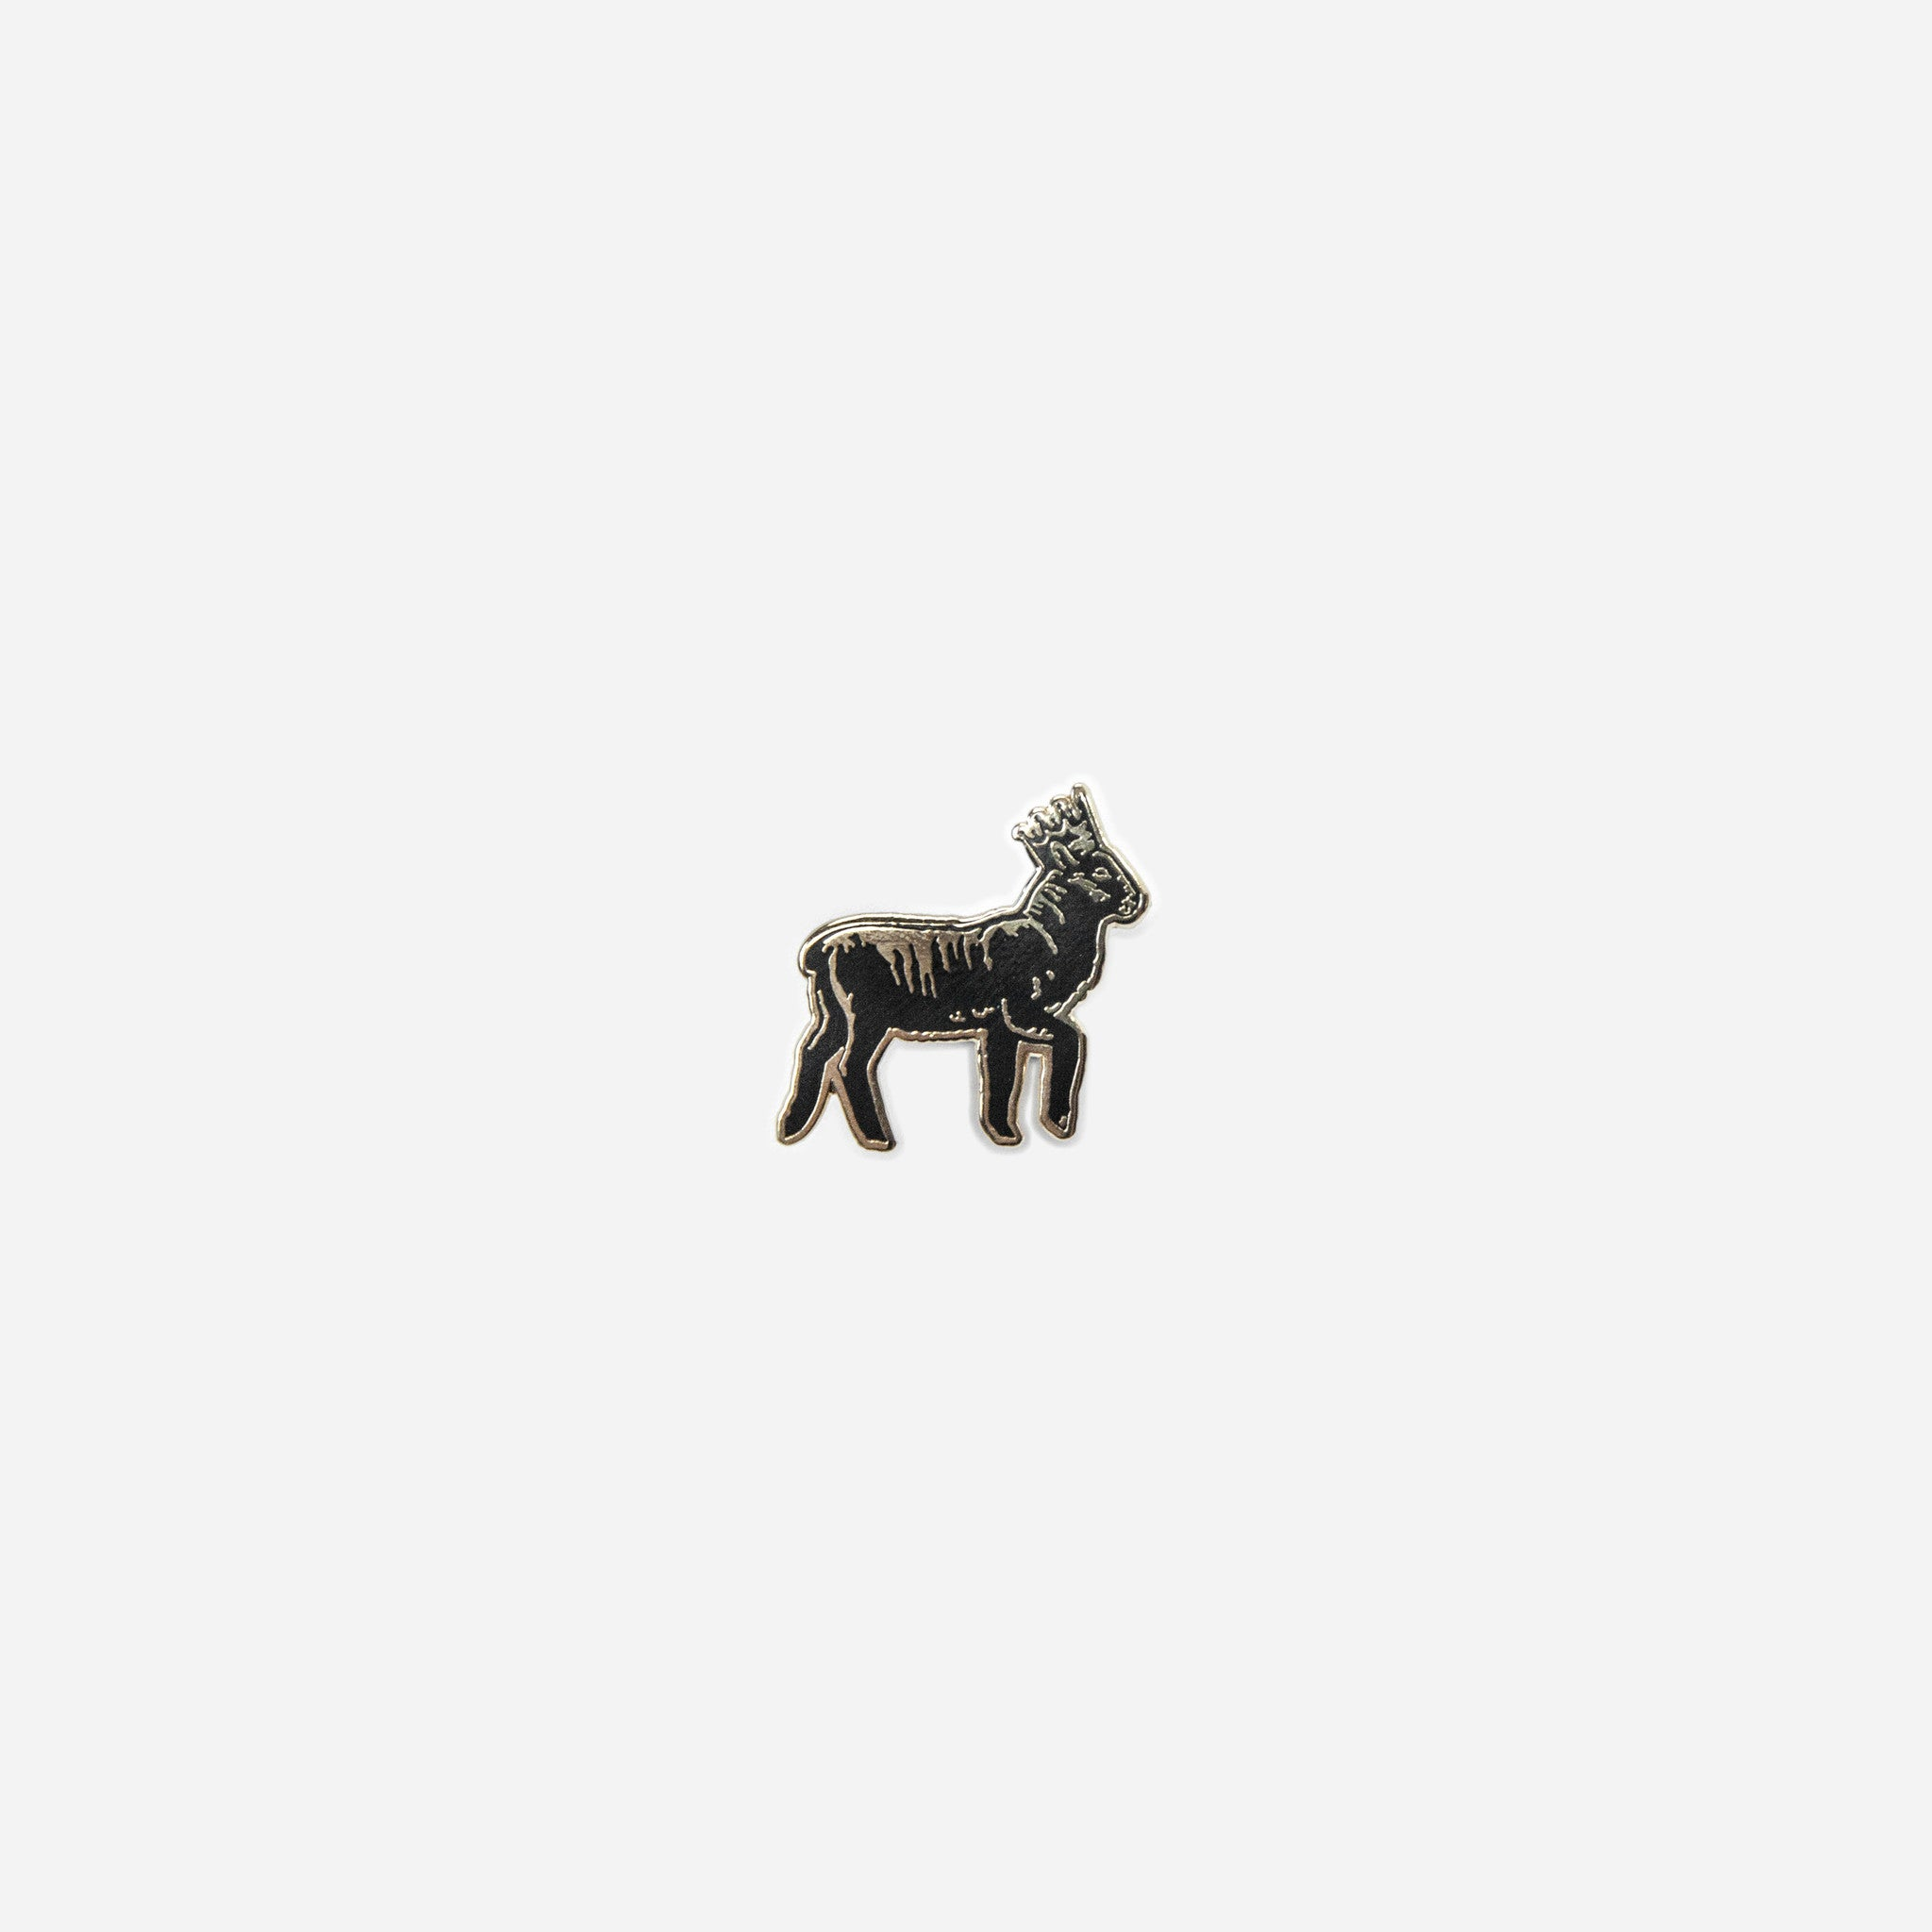 Humble Beast - Lamb Pin (Black)